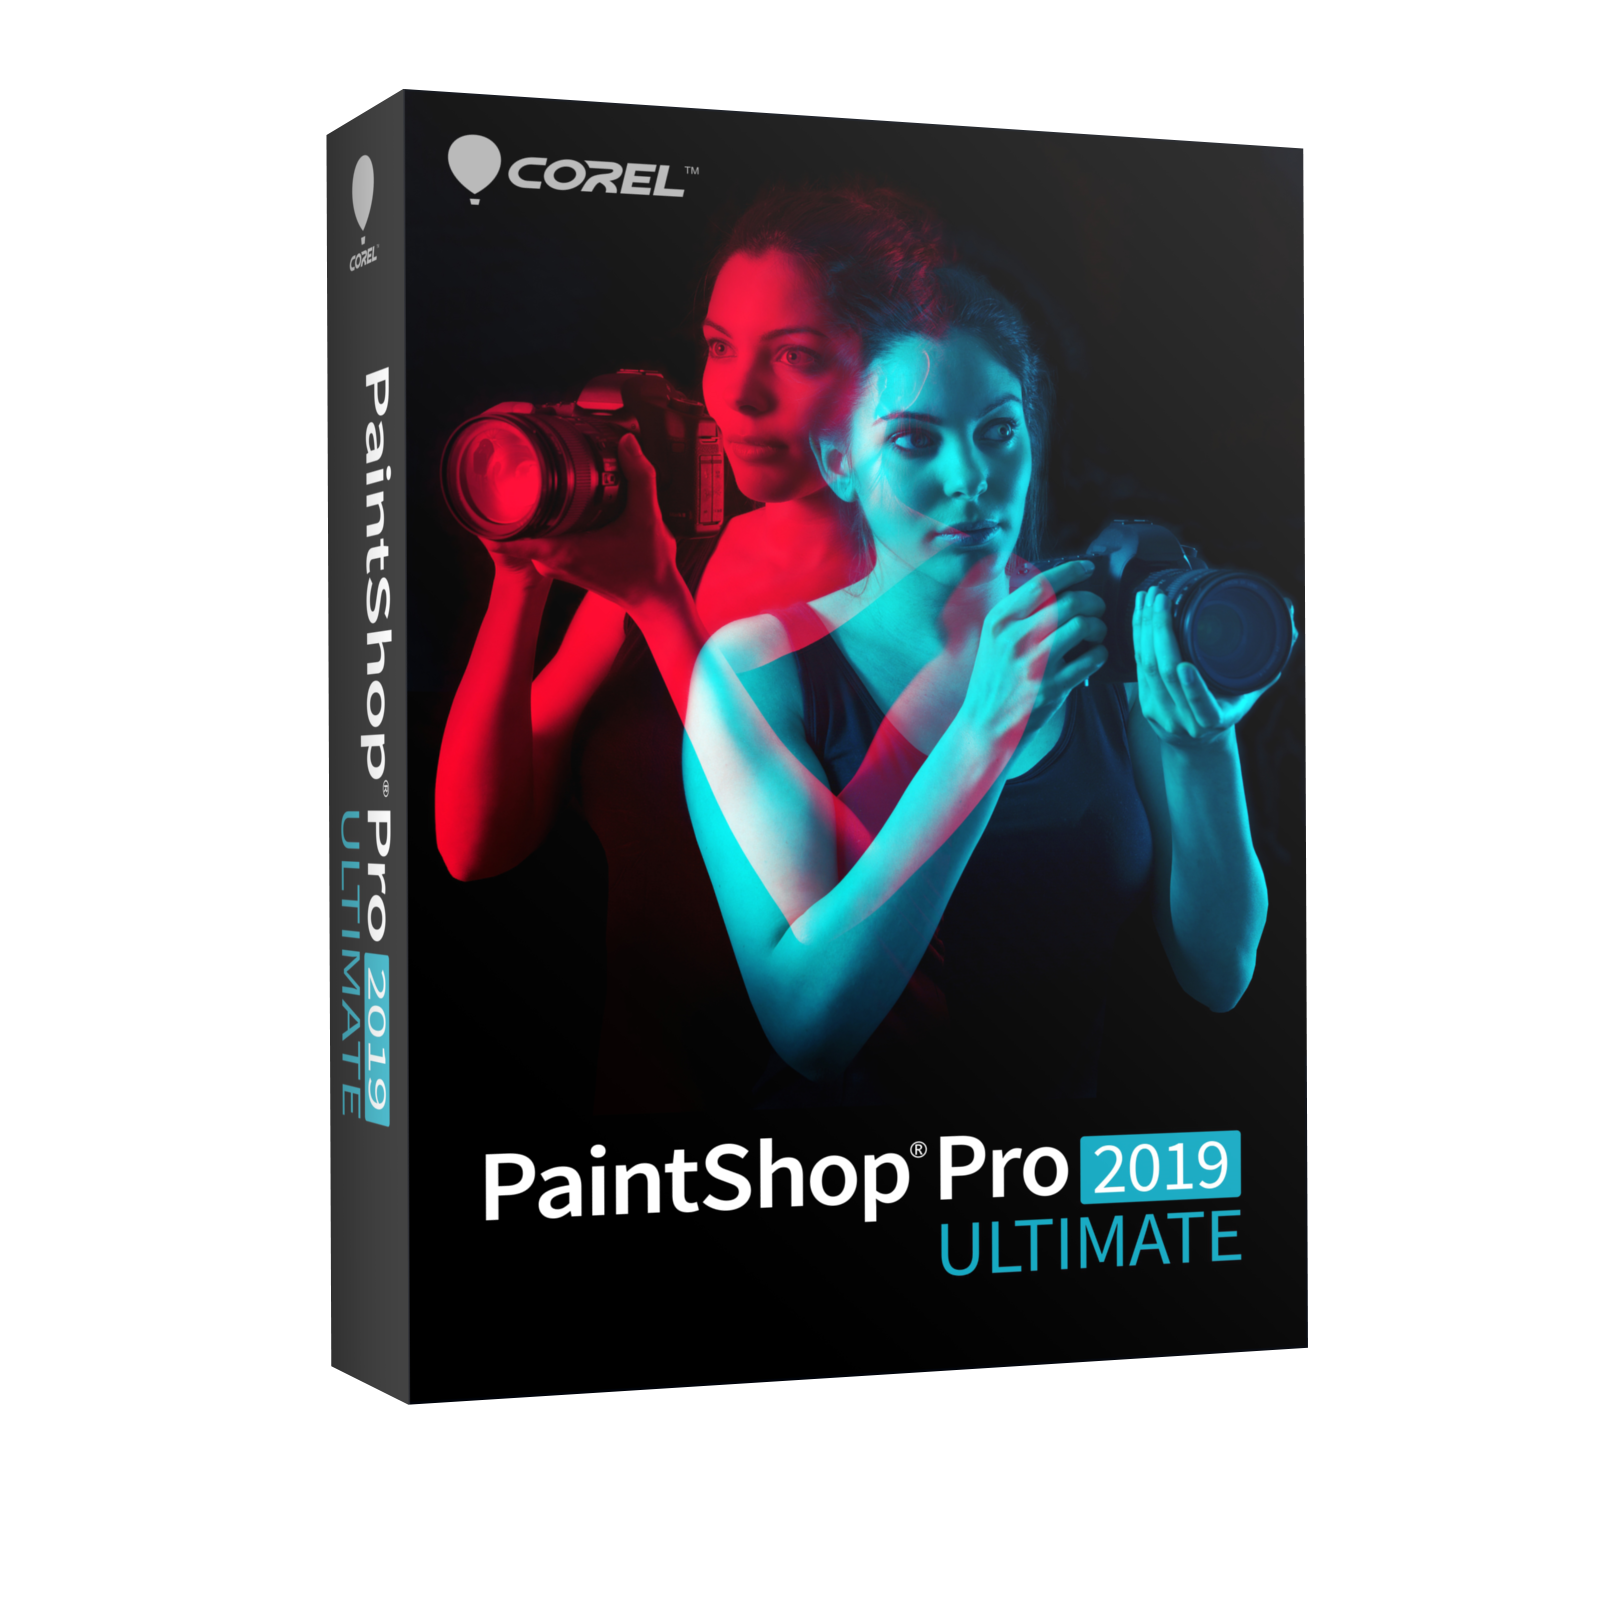 PaintShop Pro 2019 Ultimate - Box